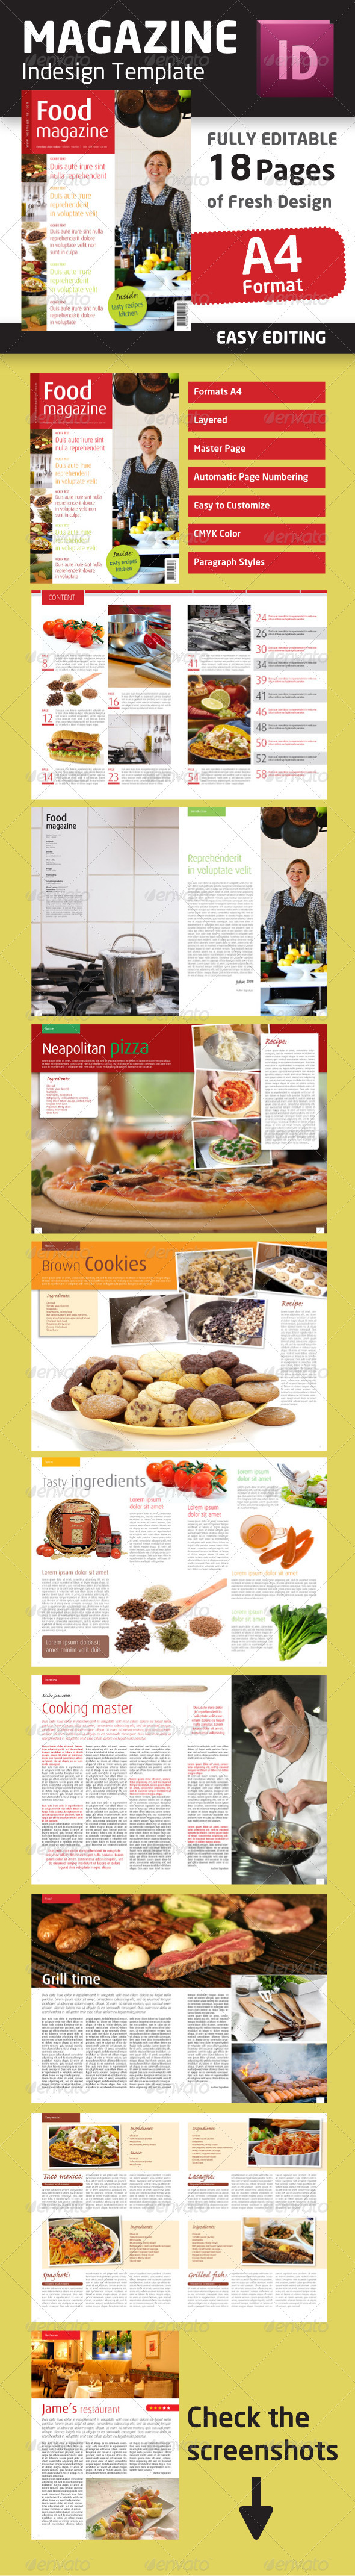 Indesign Food Magazine Template in A4 format - Magazines Print Templates